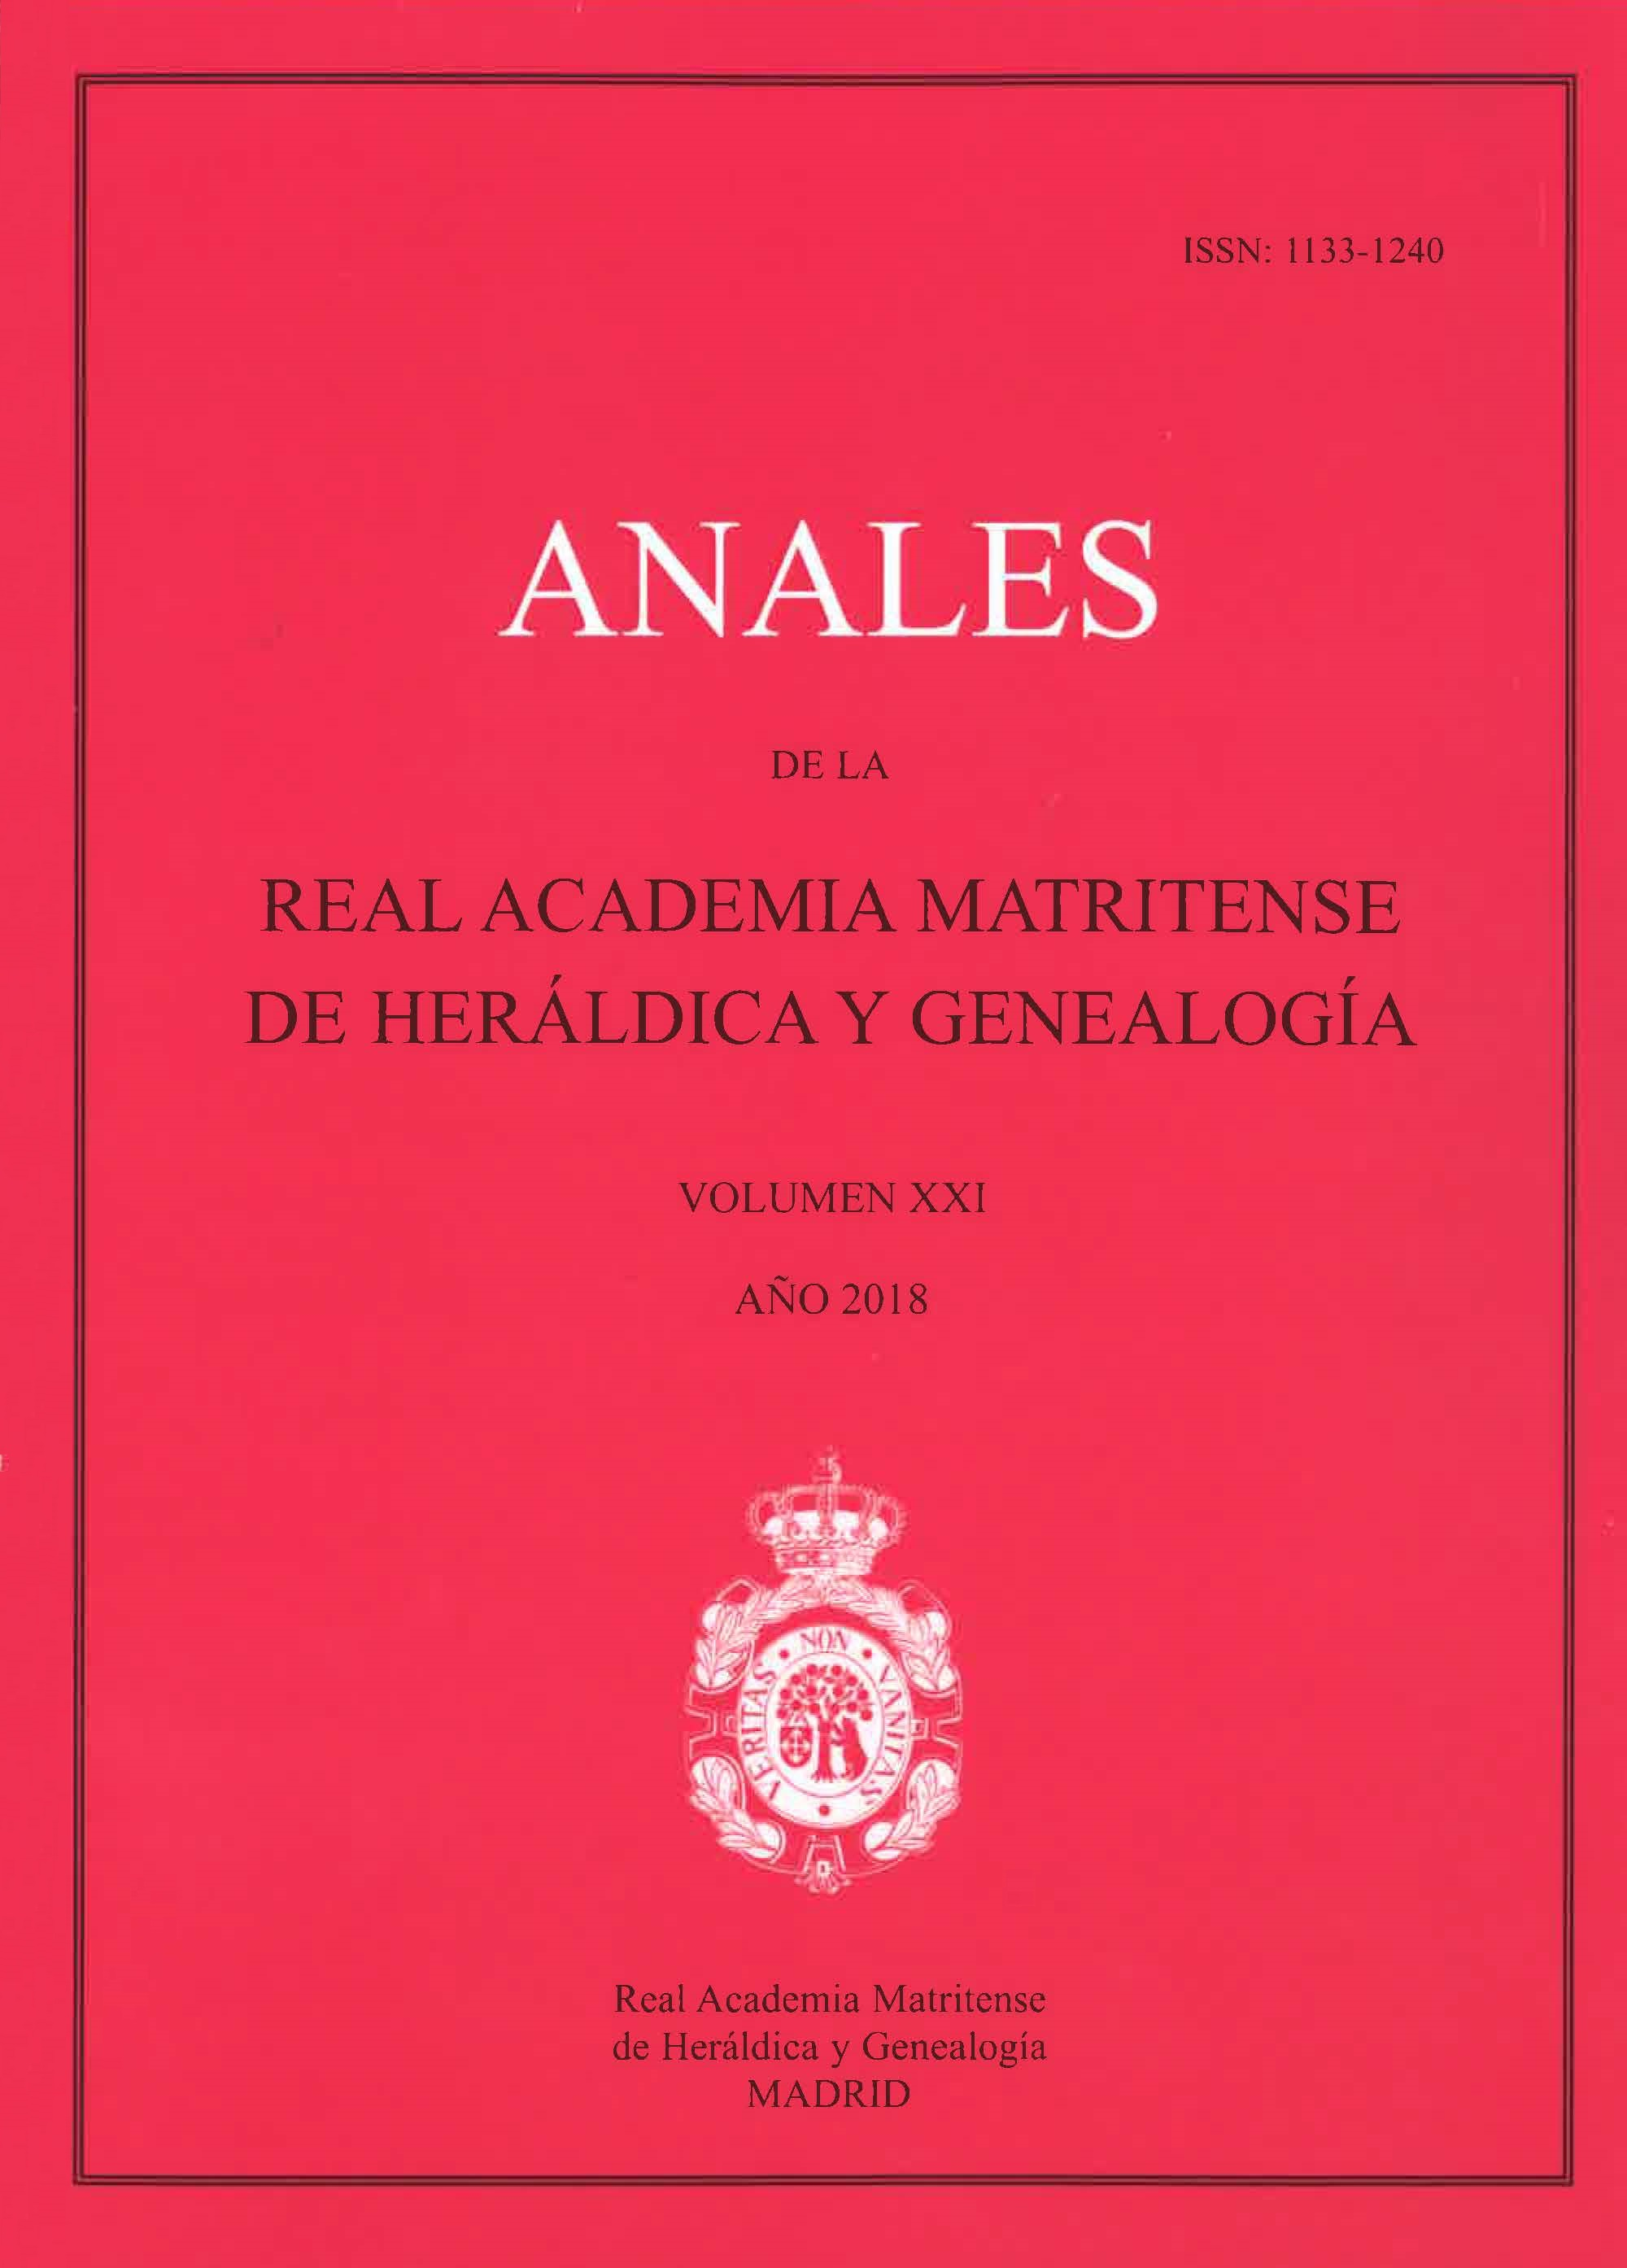 anales-2018